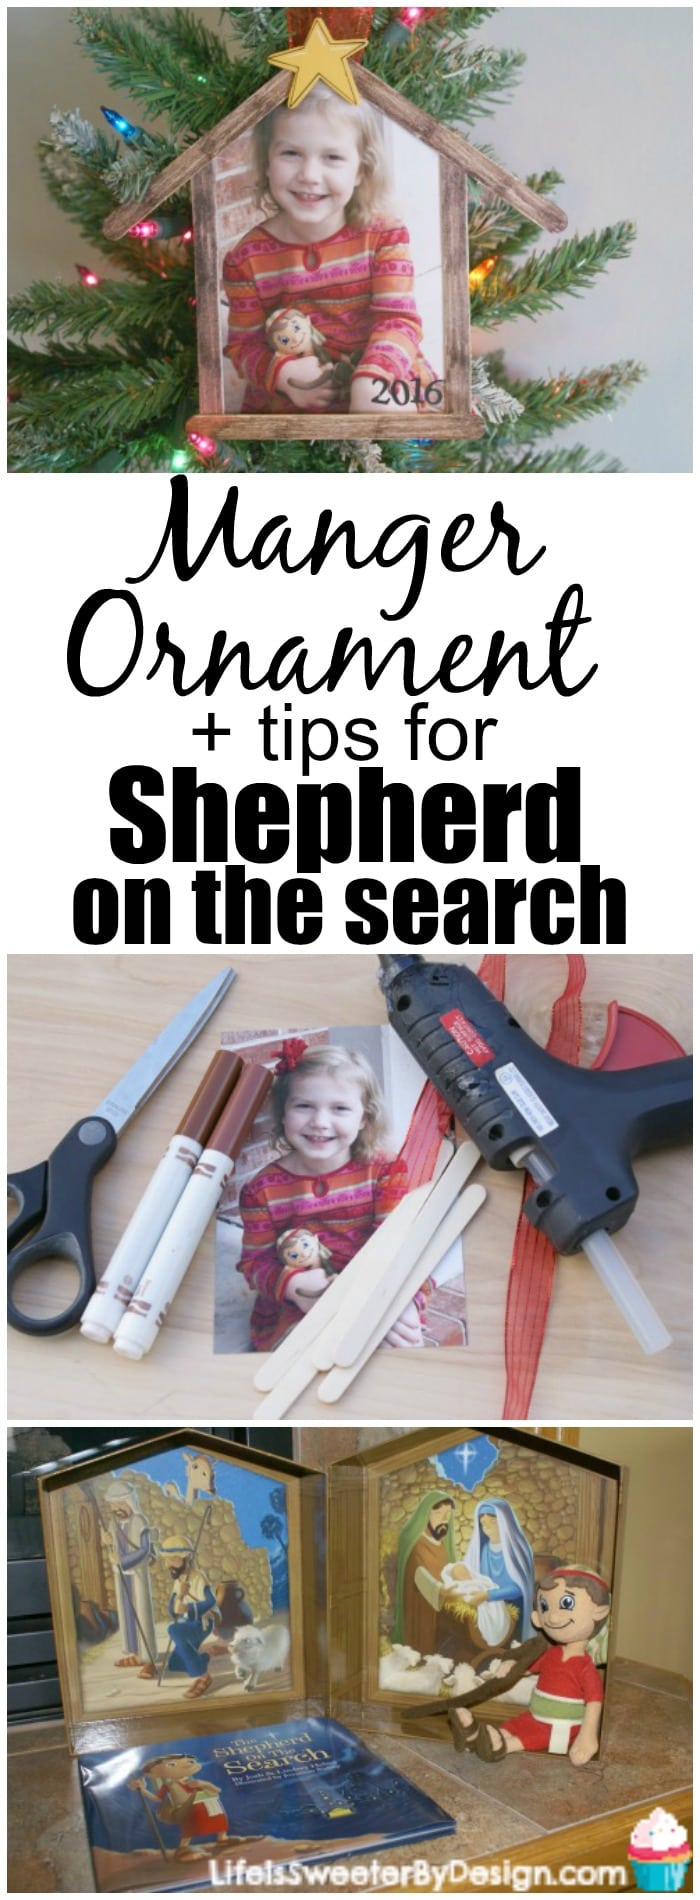 tips-for-shepherd-on-the-search-pin